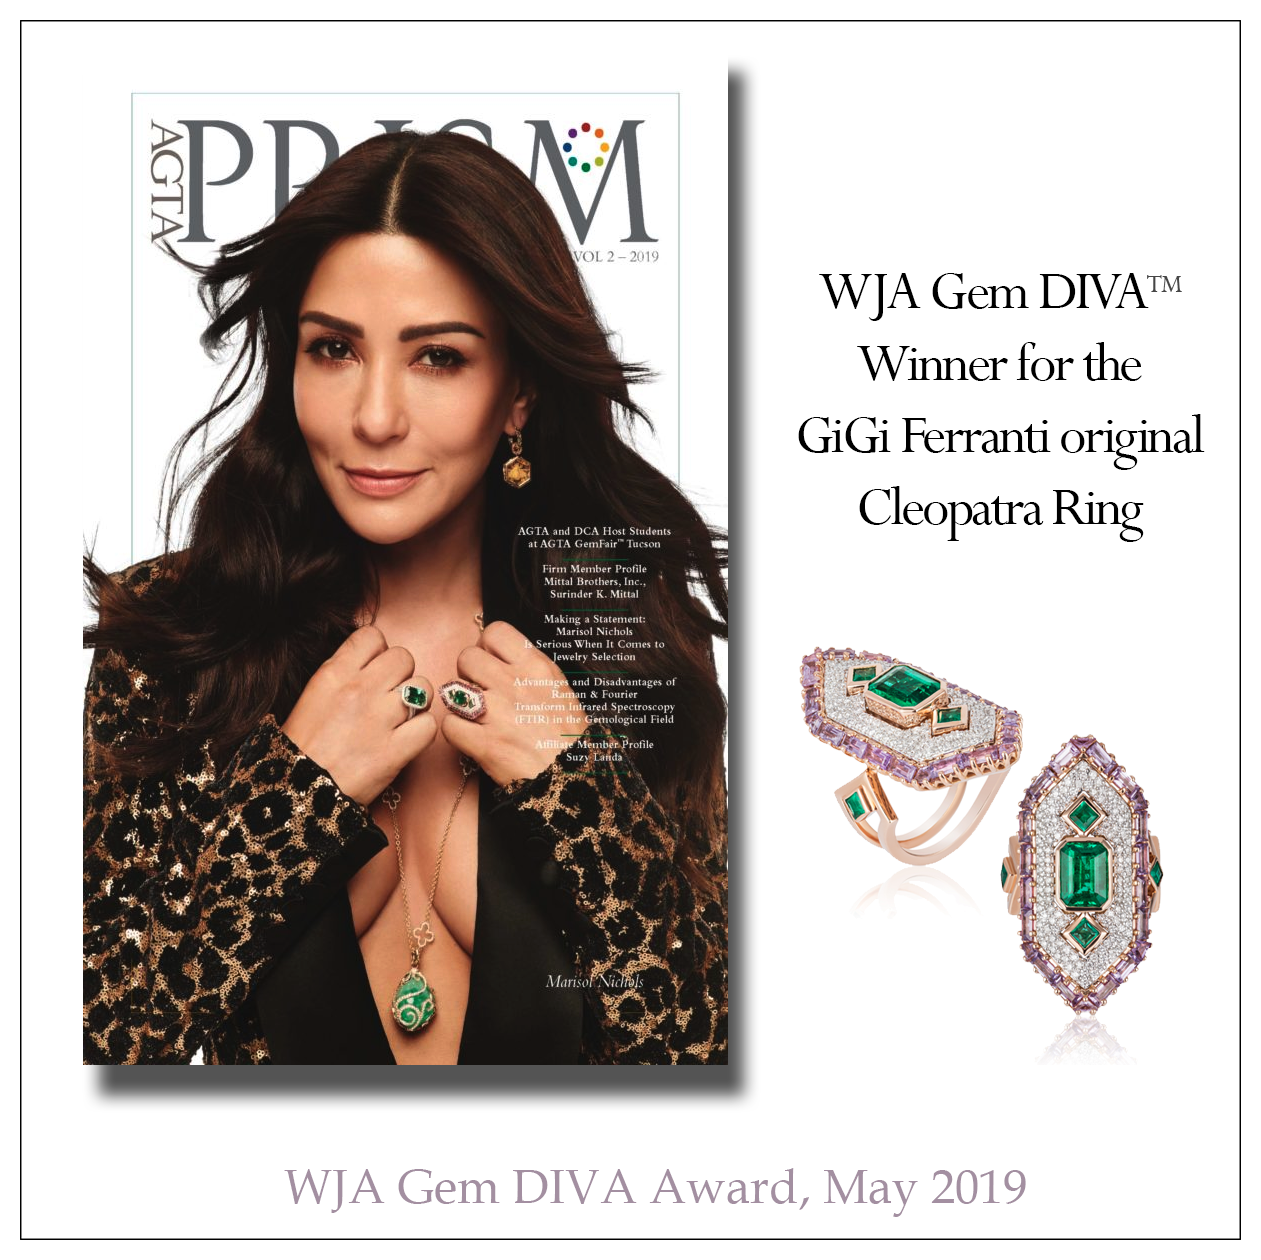 wja-gem-diva-award-may-2019.png